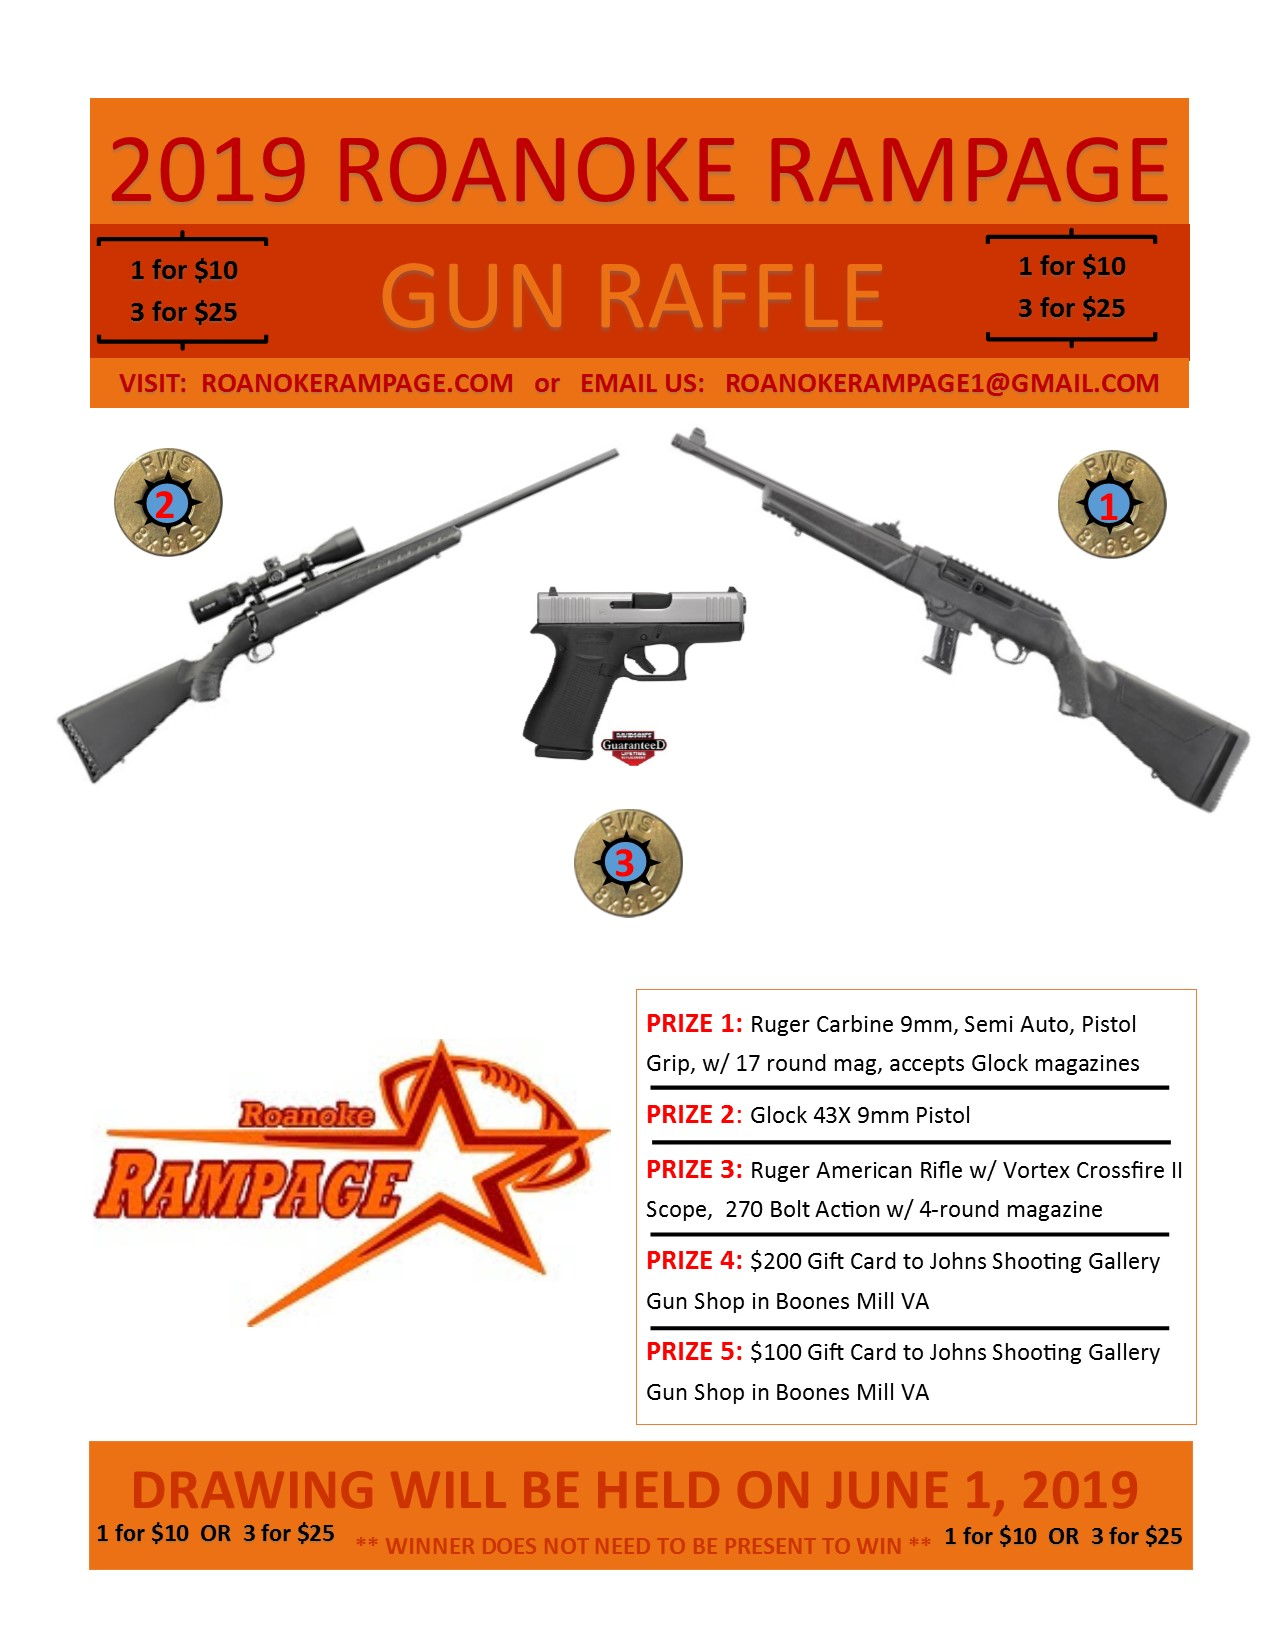 2019 Roanoke Rampage Gun Raffle